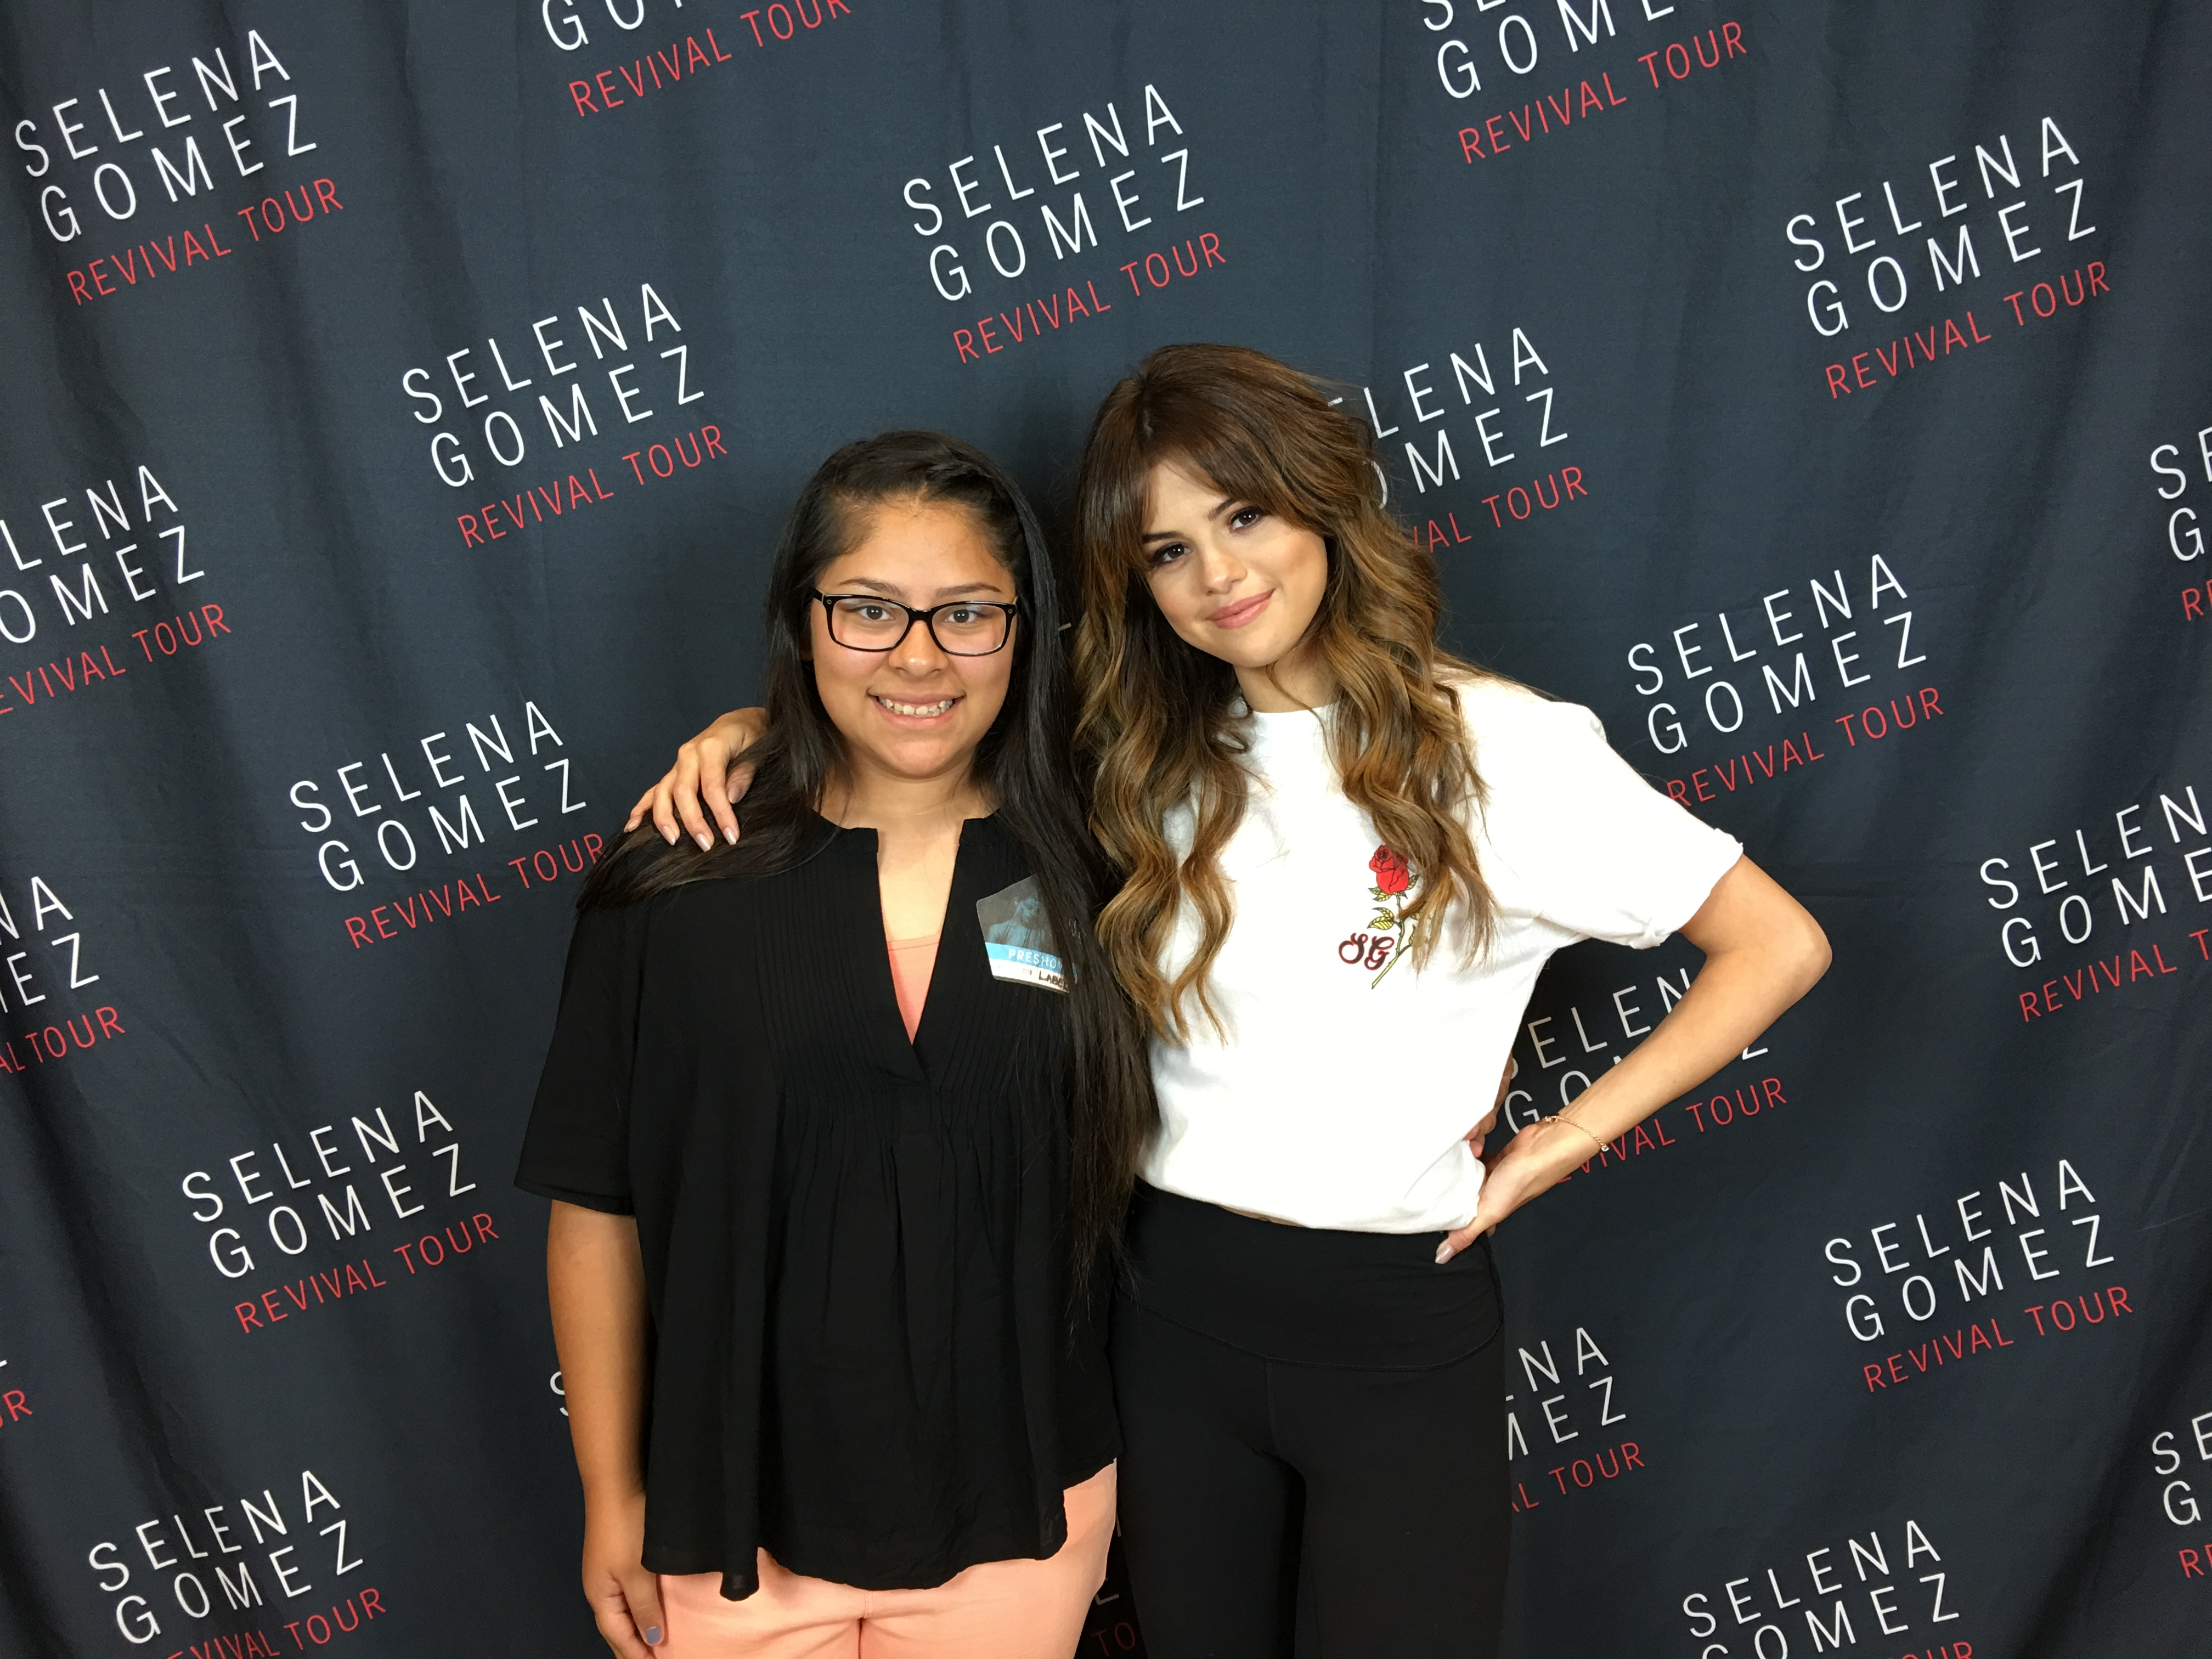 How Much Are Selena Gomez Meet And Greet Tickets Images Greetings